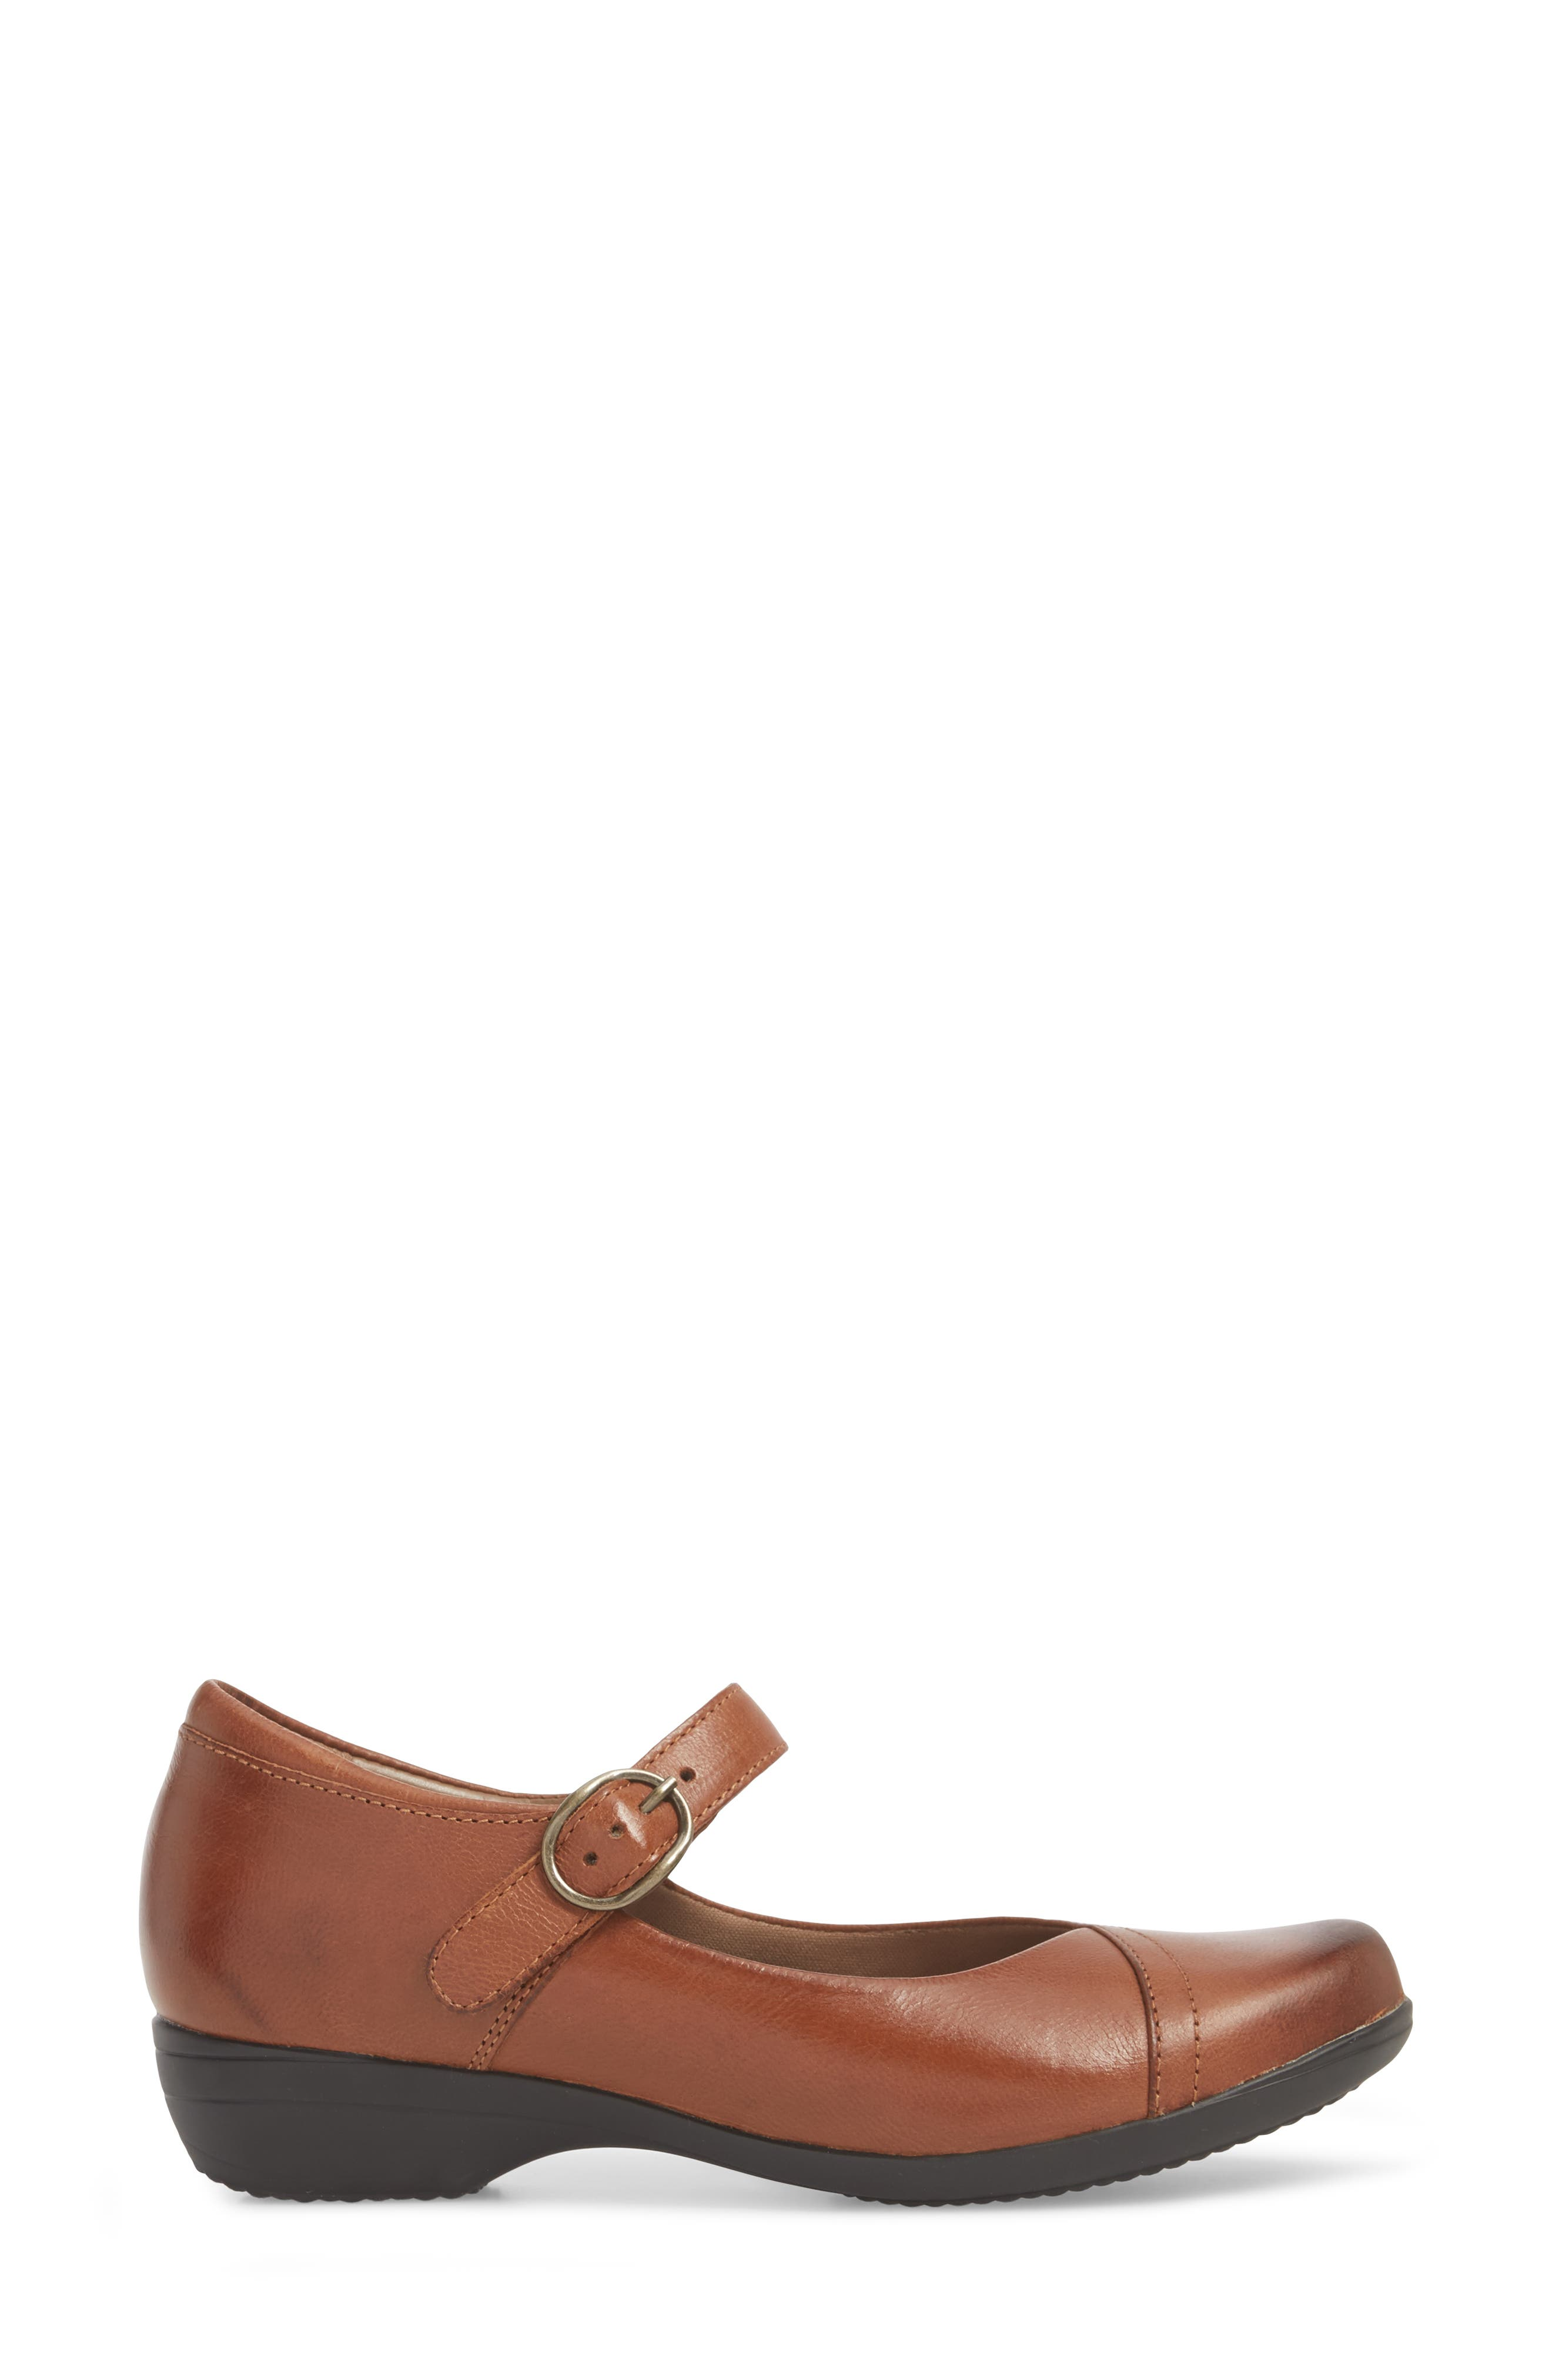 Fawna Mary Jane Flat,                             Alternate thumbnail 3, color,                             CHESTNUT LEATHER